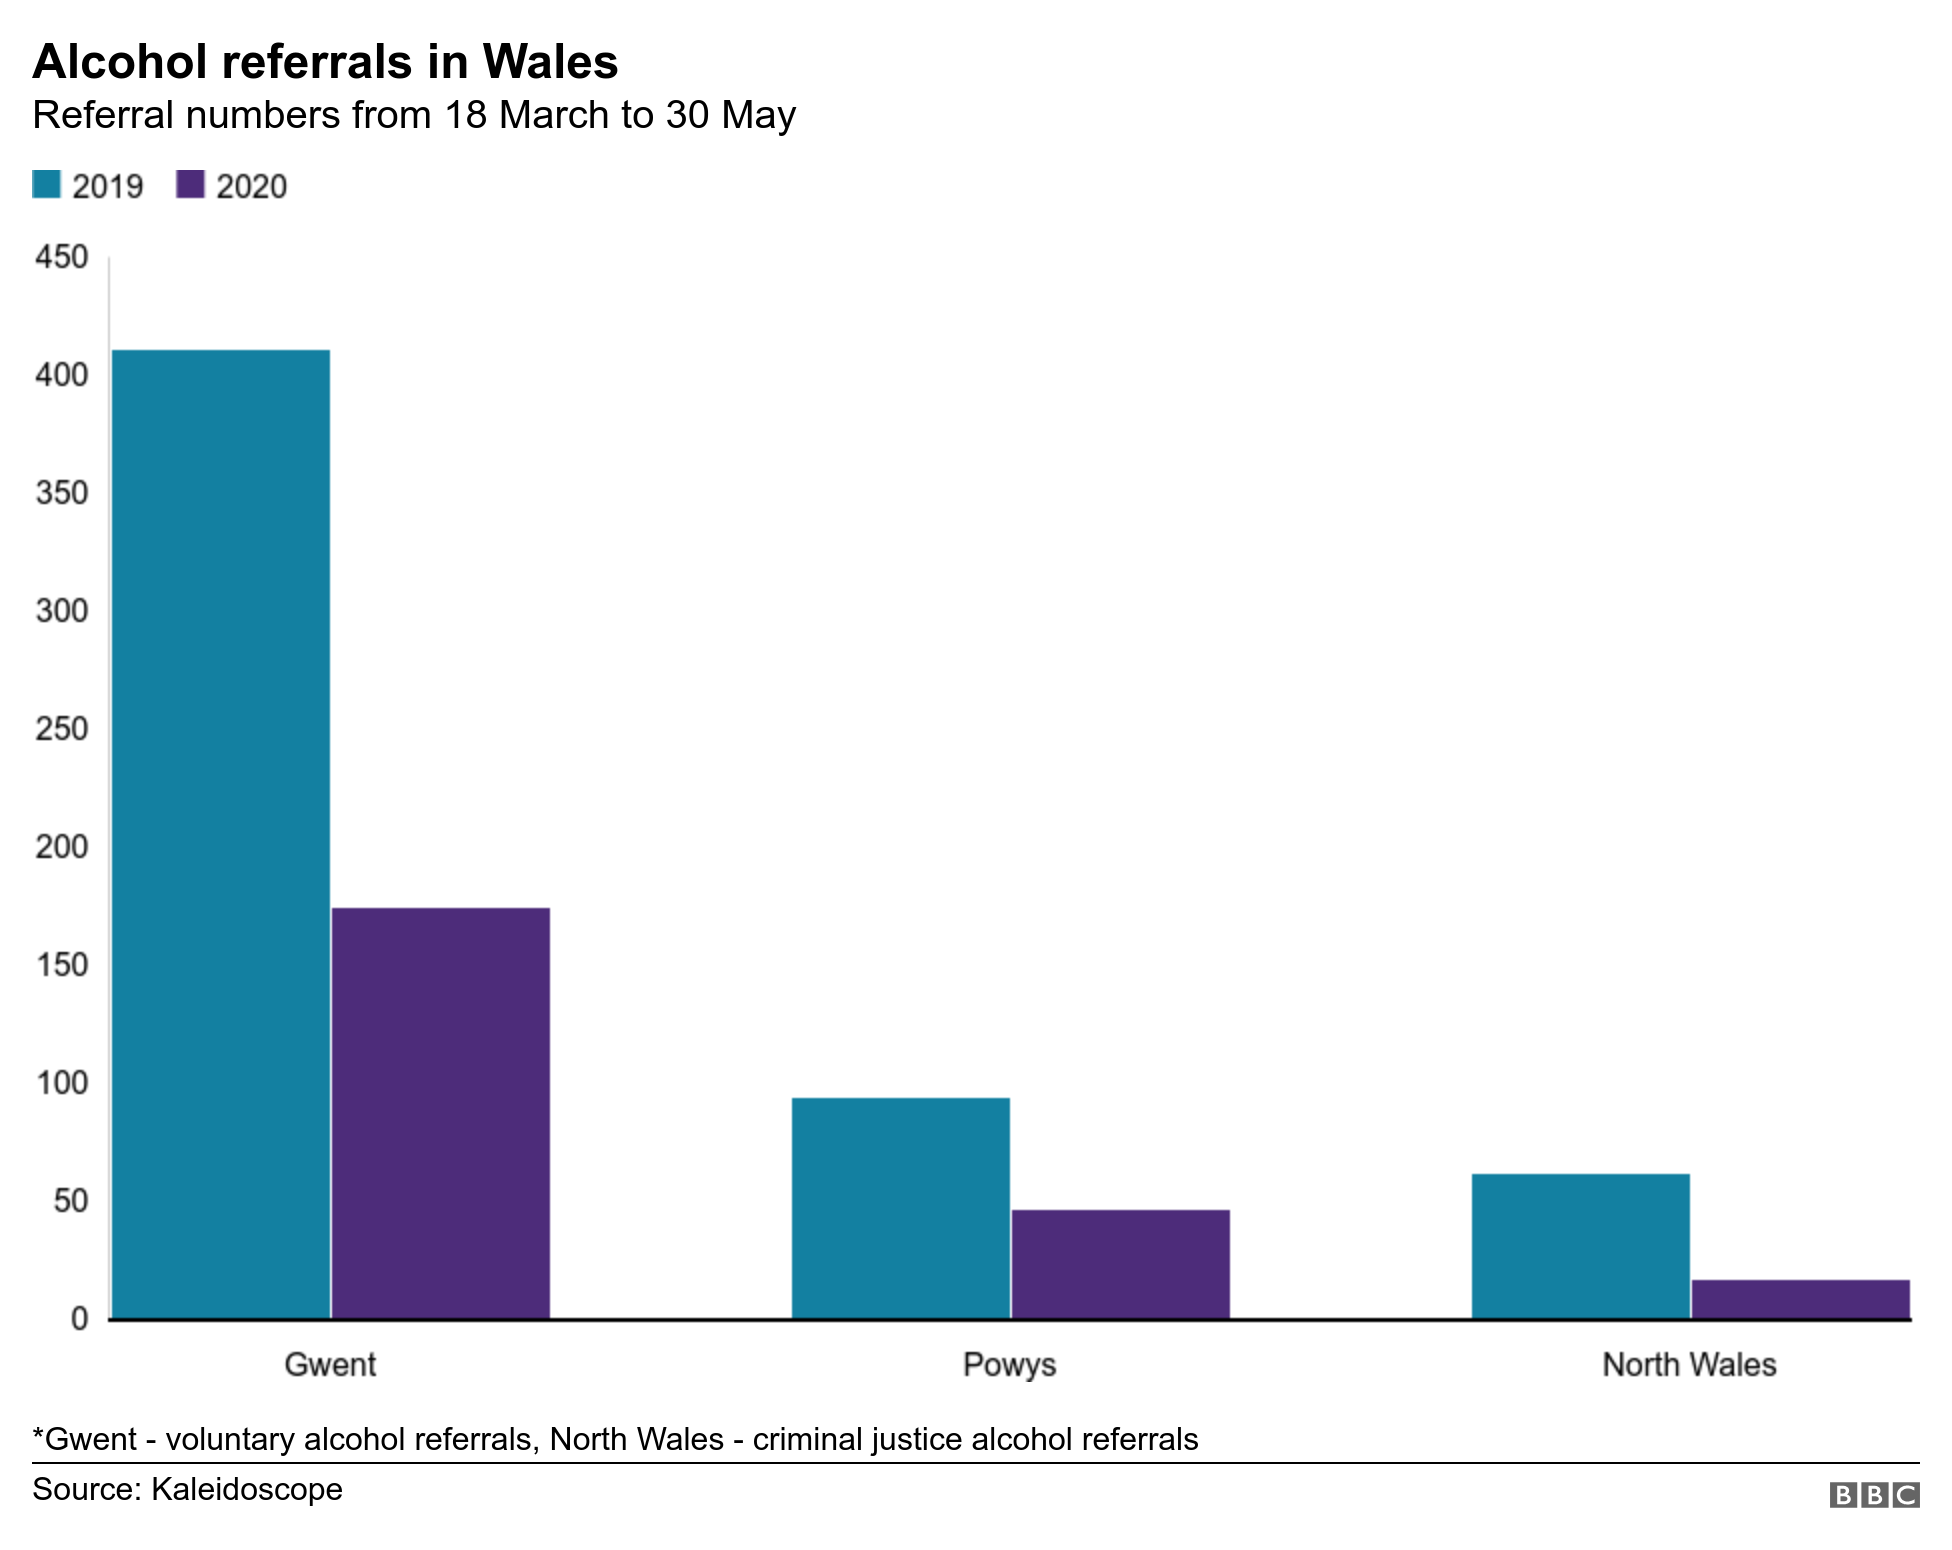 Alcohol referrals in Wales